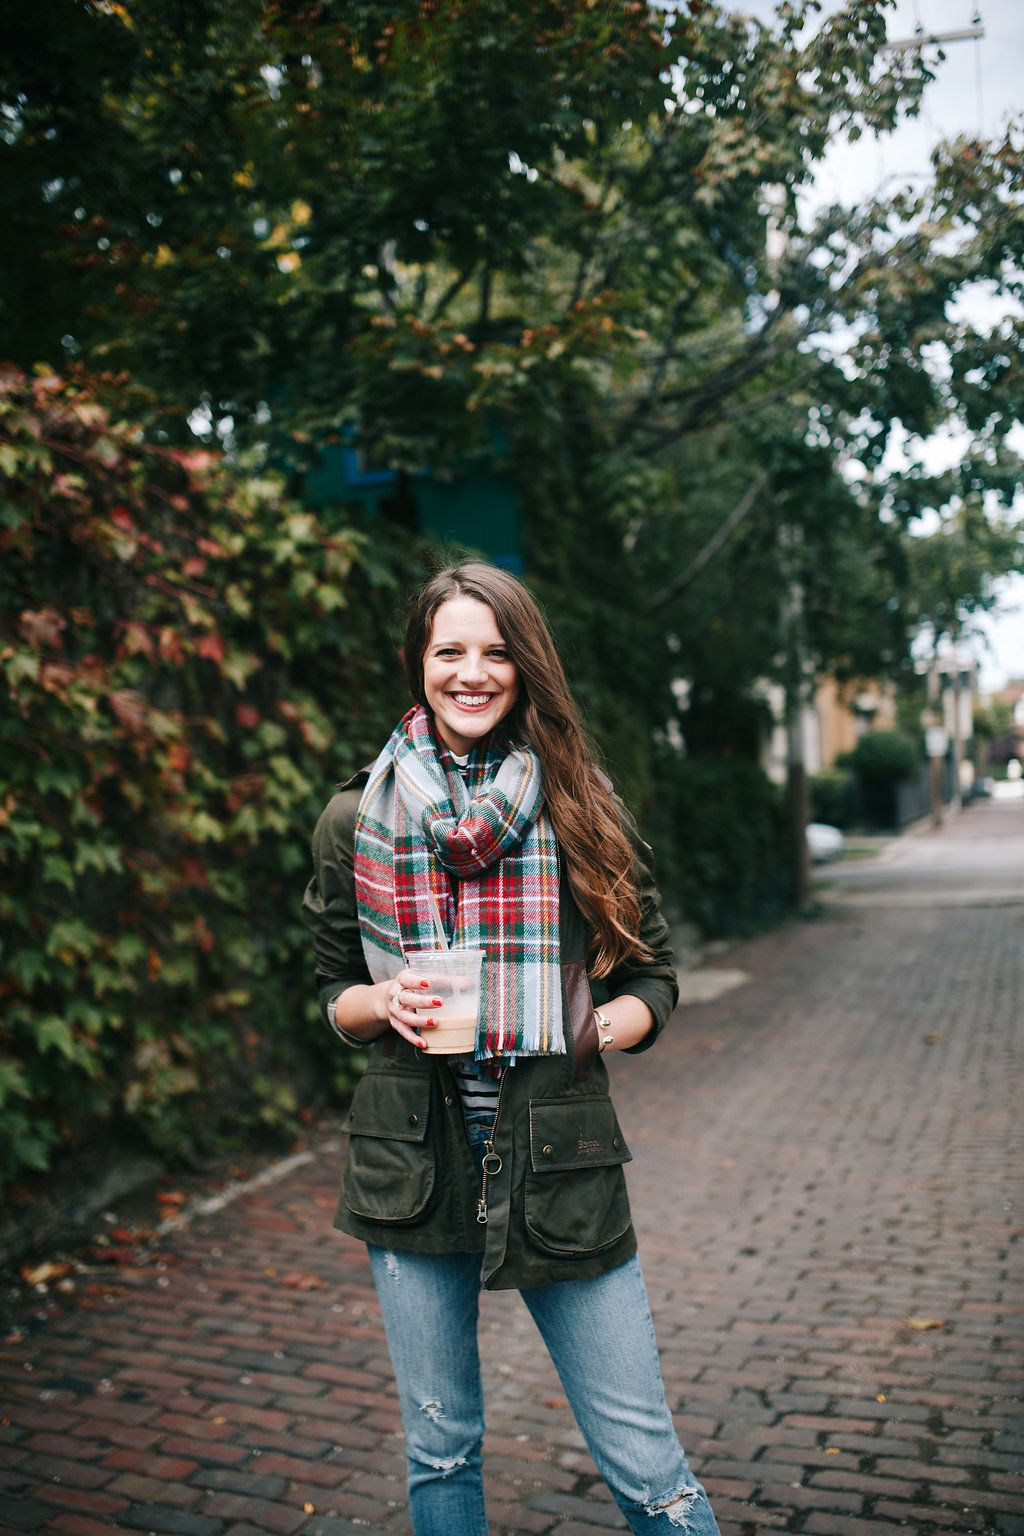 """The Quintessential """"Fall"""" Outfit - Plaid, Stripes, Deep Colors!"""